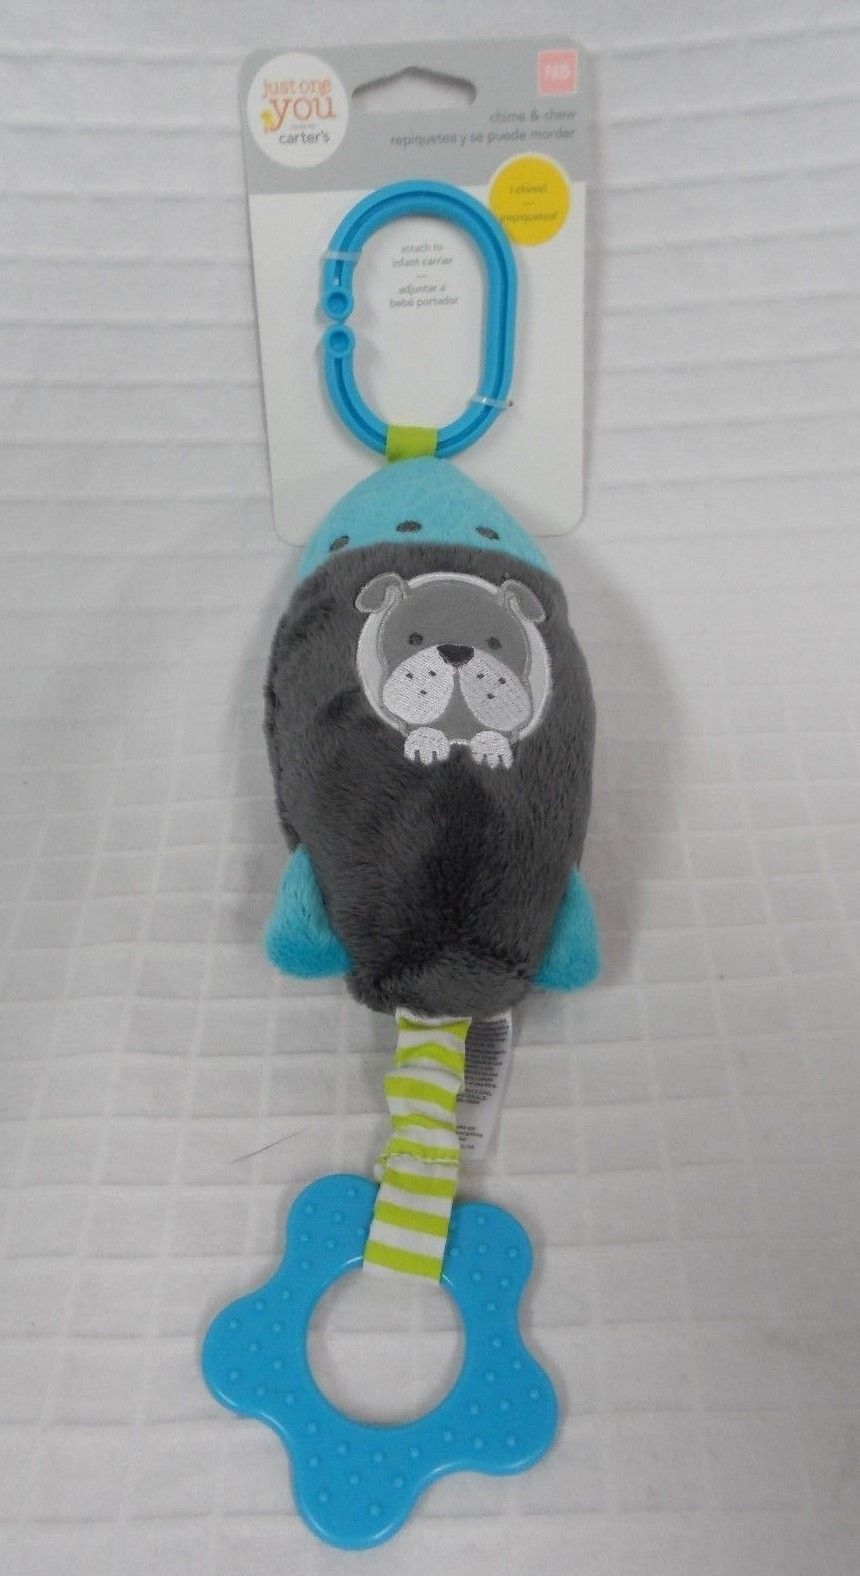 NEW Baby CARTER/'S Just One You BROWN Bear Chime /& Chew teether hang toy stroller